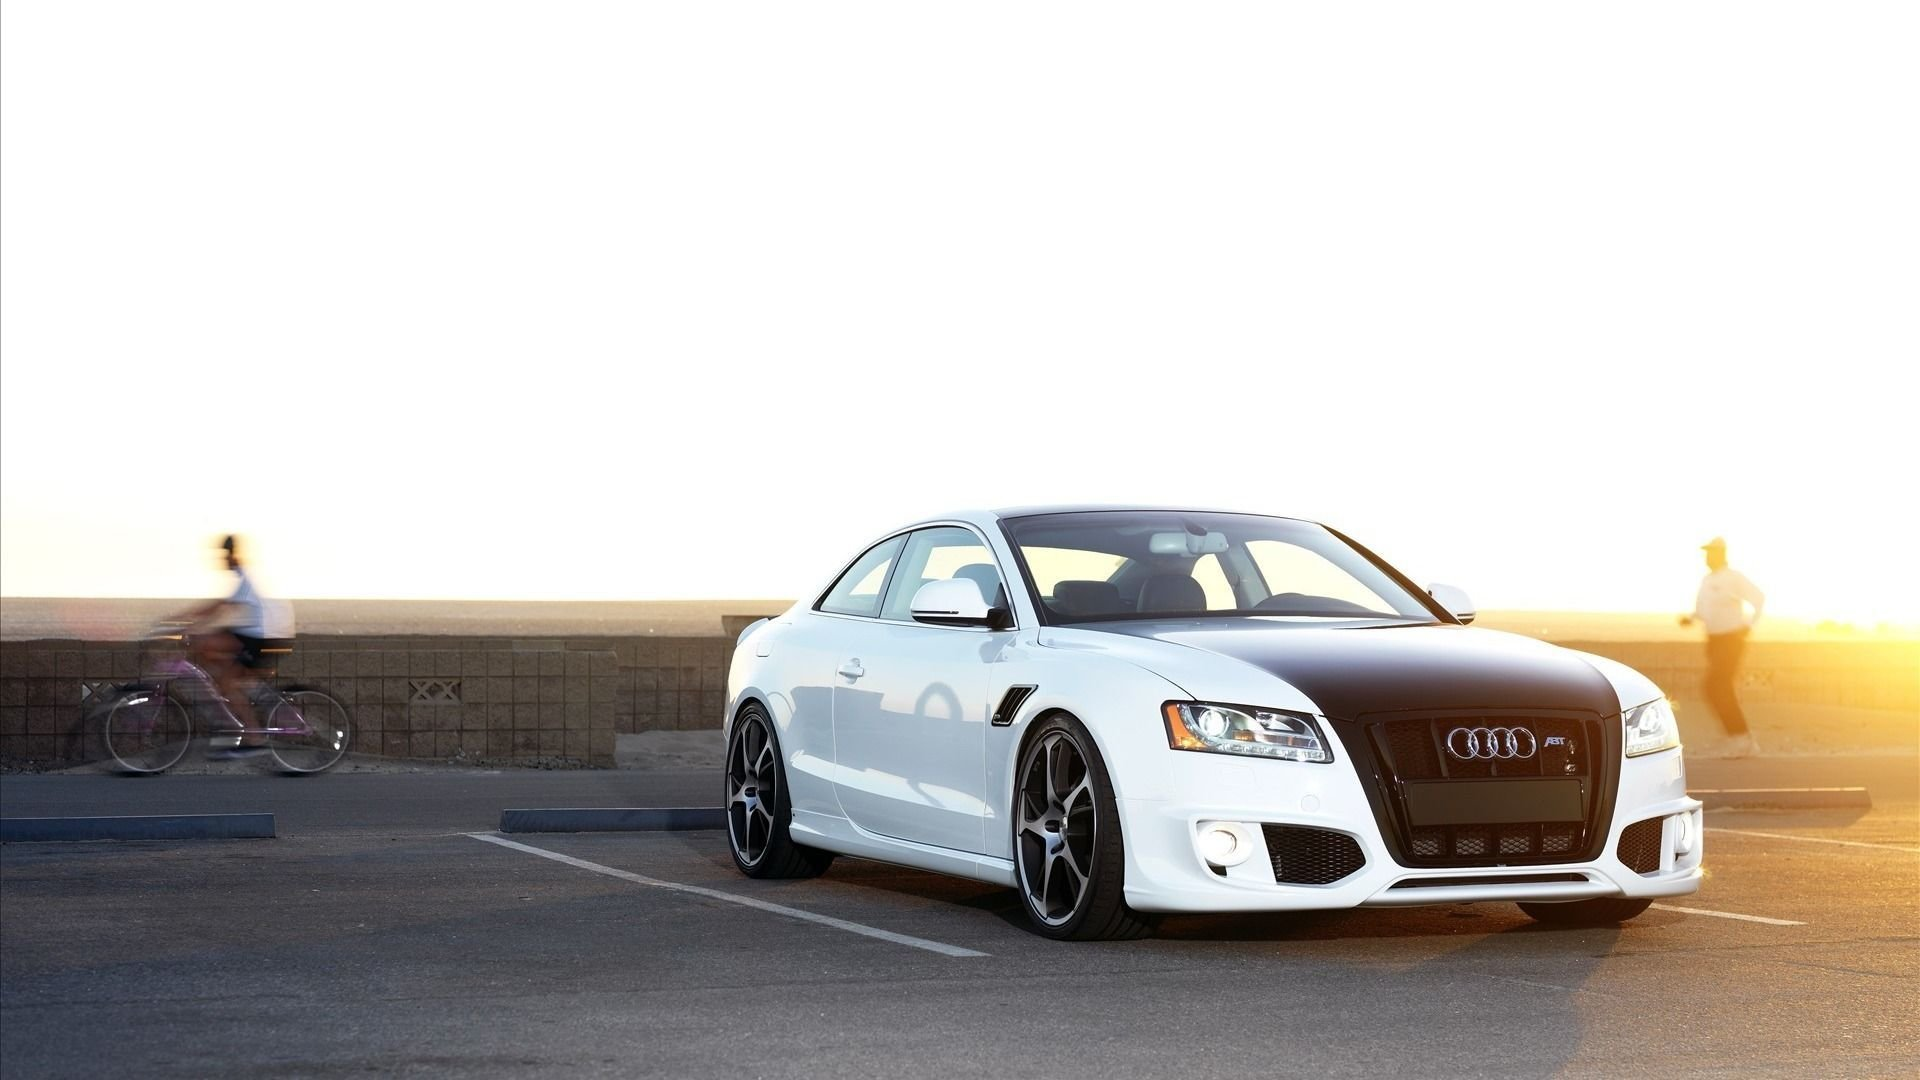 Latest Wallpapers Of Audi Cars Full Hd Http Free Download